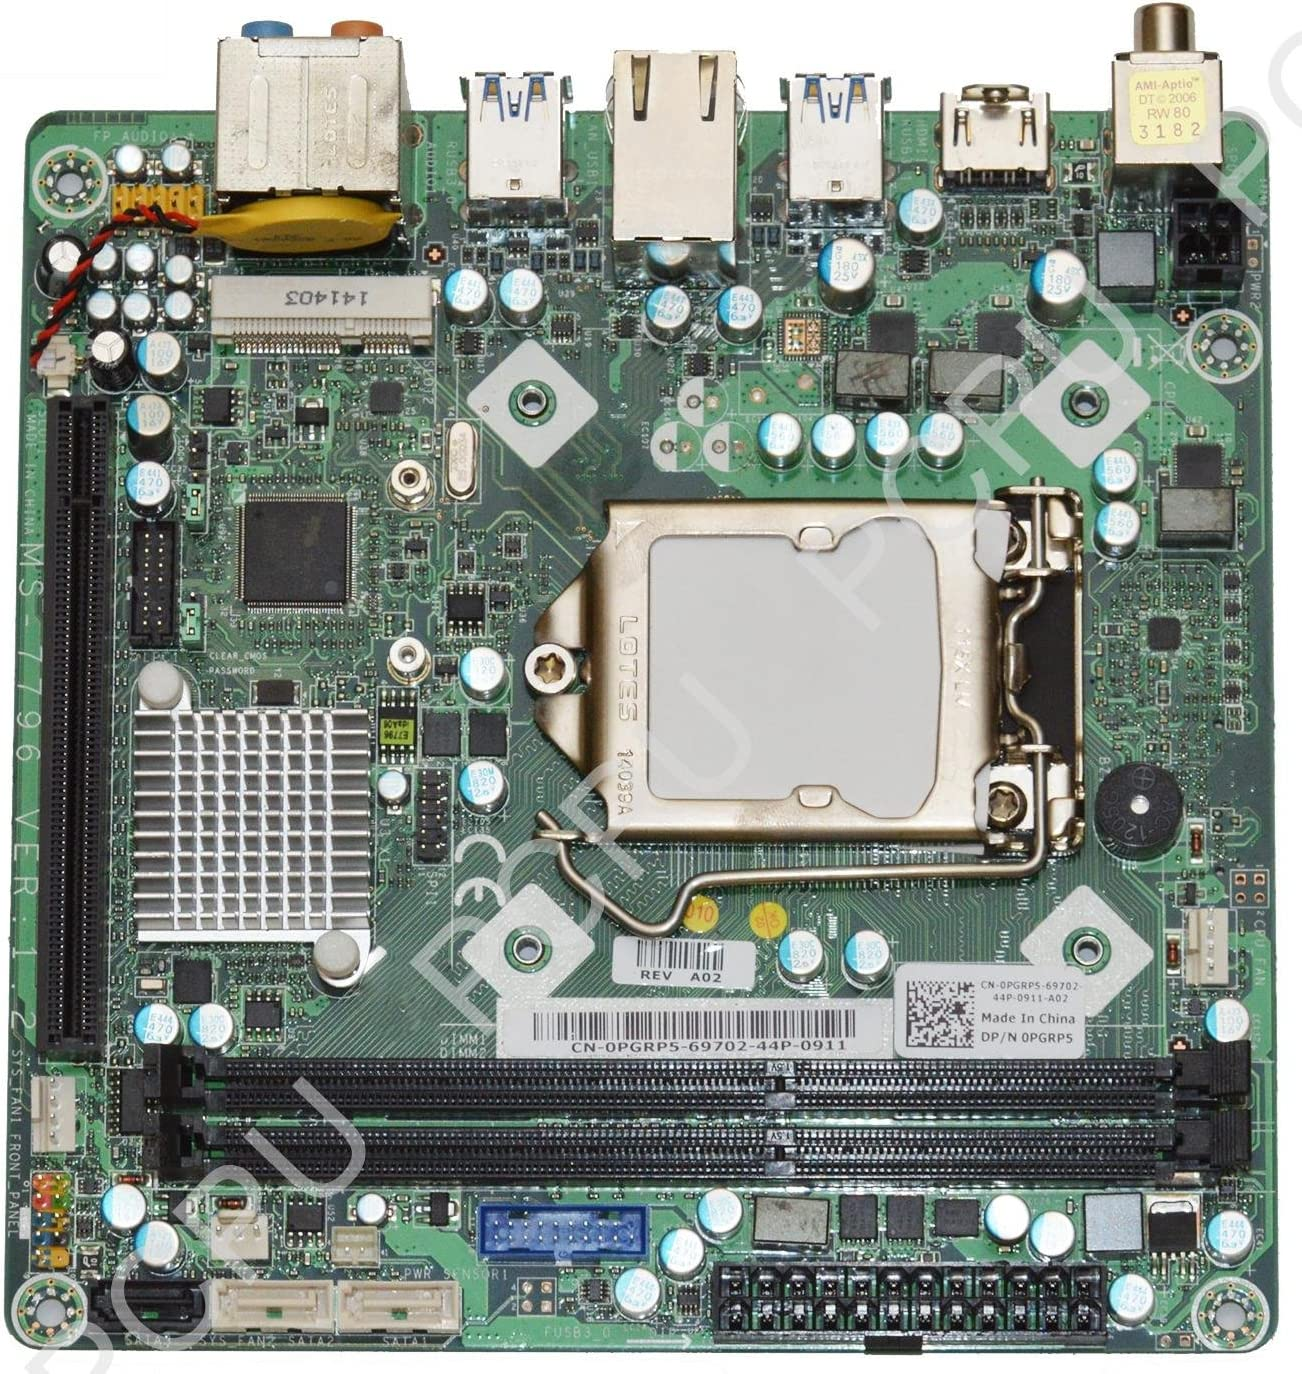 Dell Alienware X51 R2 Andromeda MS-7796 Intel CPU Desktop Motherboard PGRP5 0PGRP5